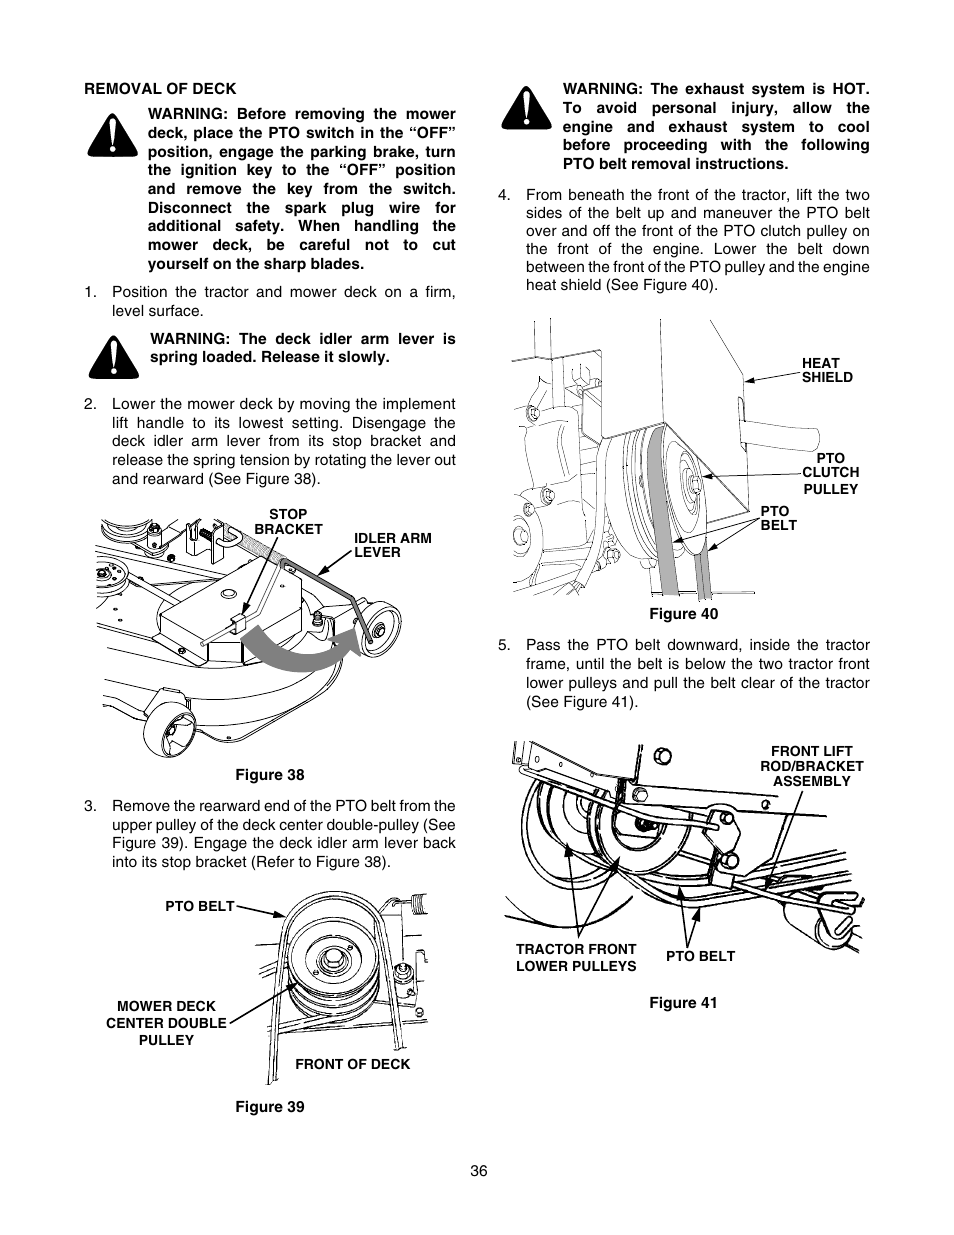 hight resolution of cub cadet gt 2550 user manual page 36 56 honeywell rth2300 rth221 thermostat wiring diagram